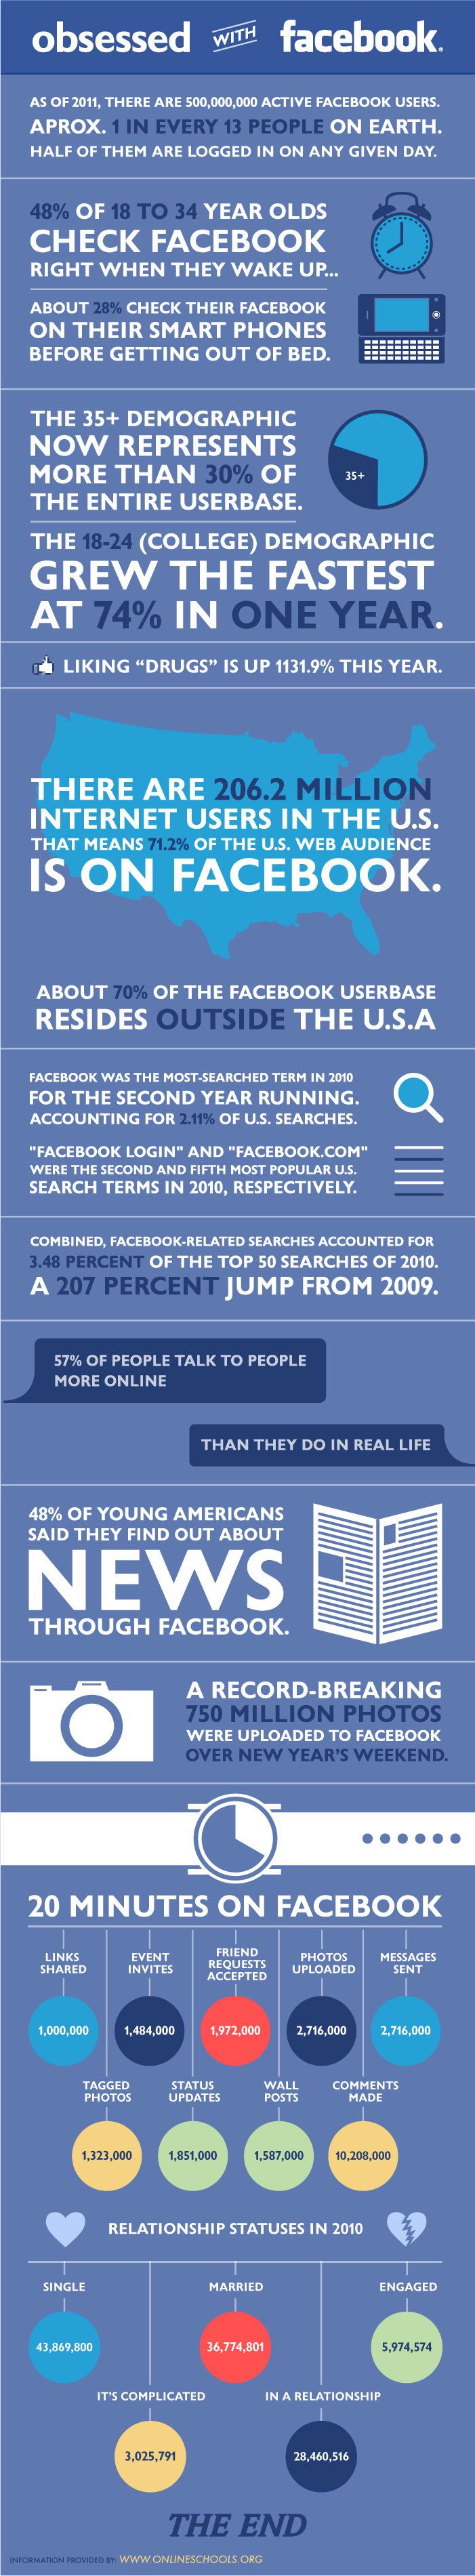 Are You Obsessed With Facebook?